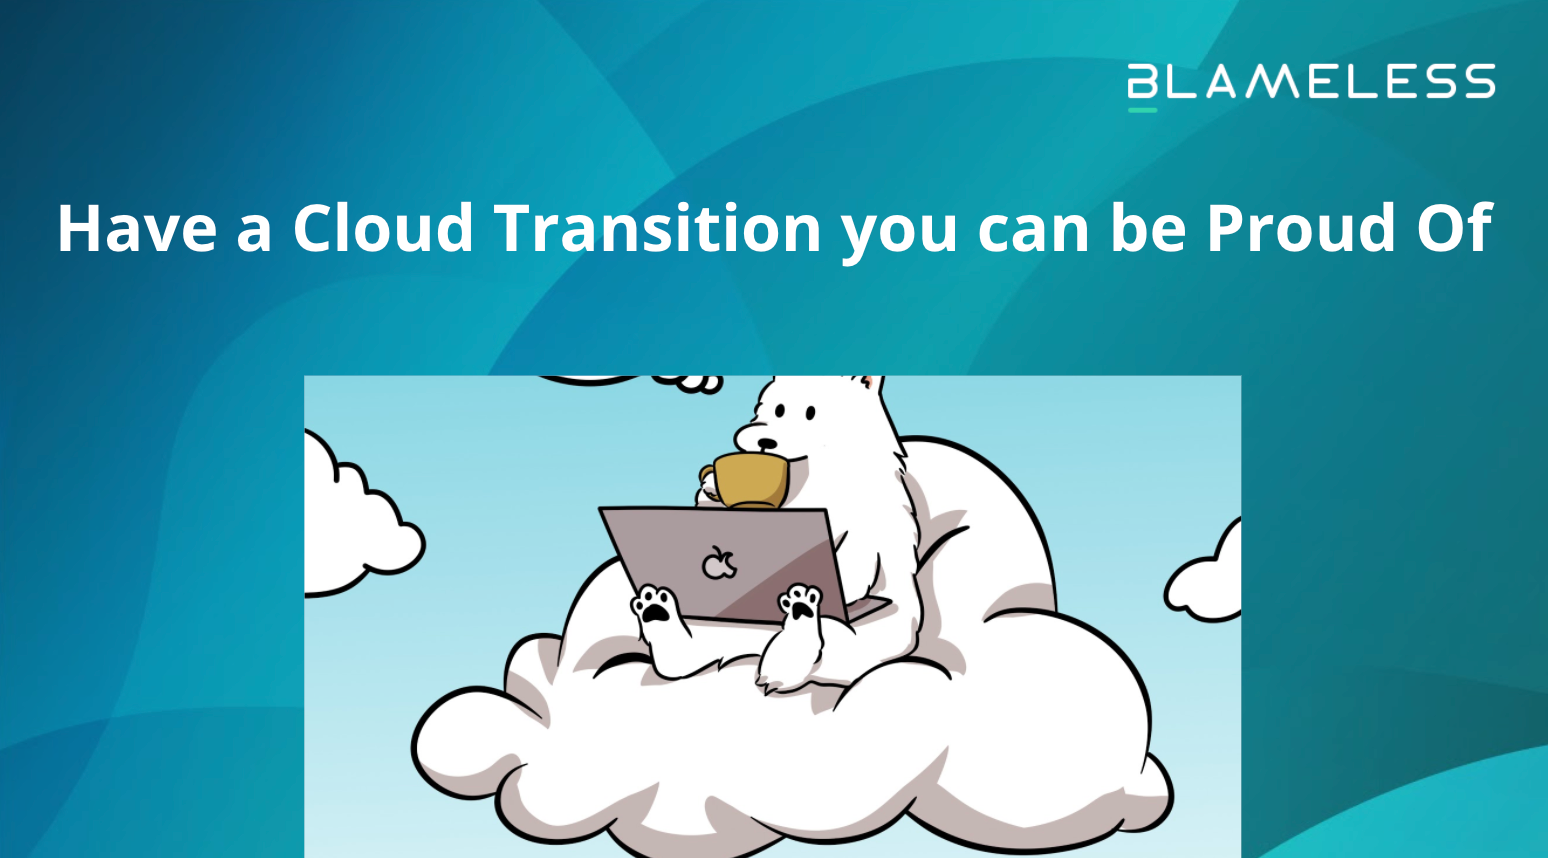 Have a Cloud Transition you can be Proud Of